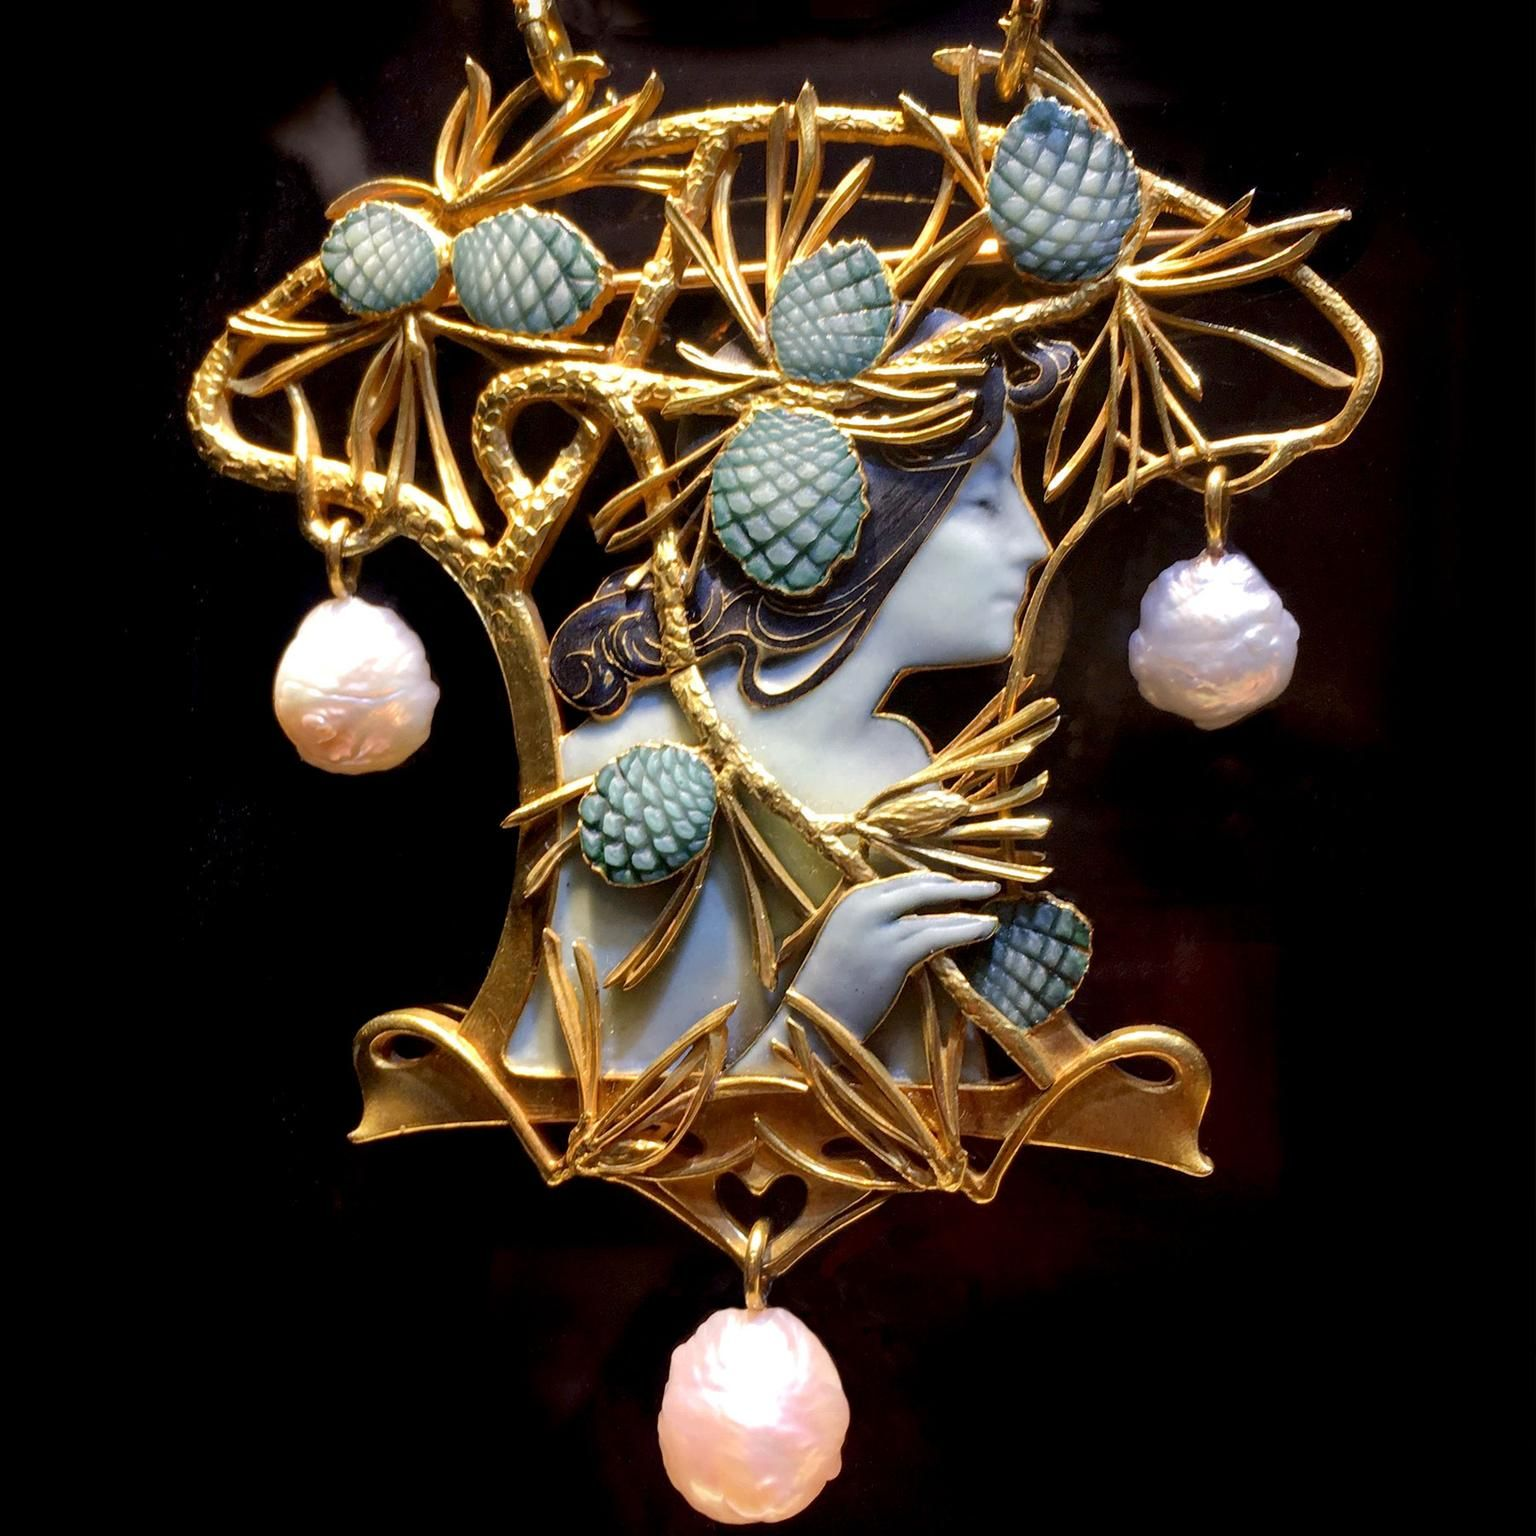 26+ Rene lalique jewelry for sale viral